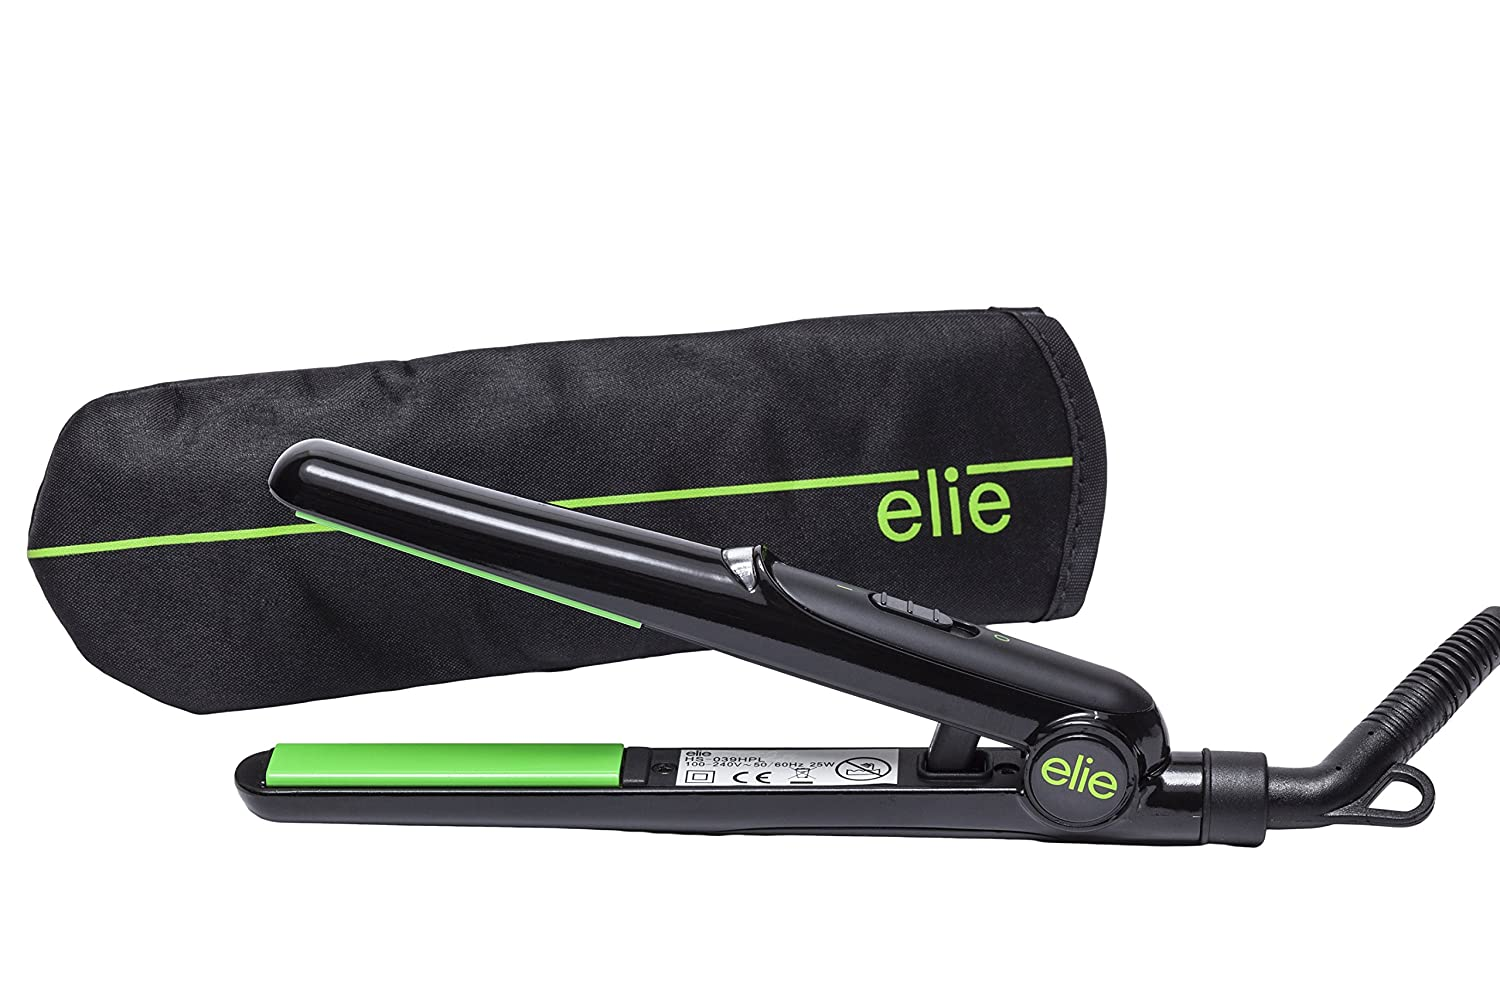 elie mini hair straighteenr